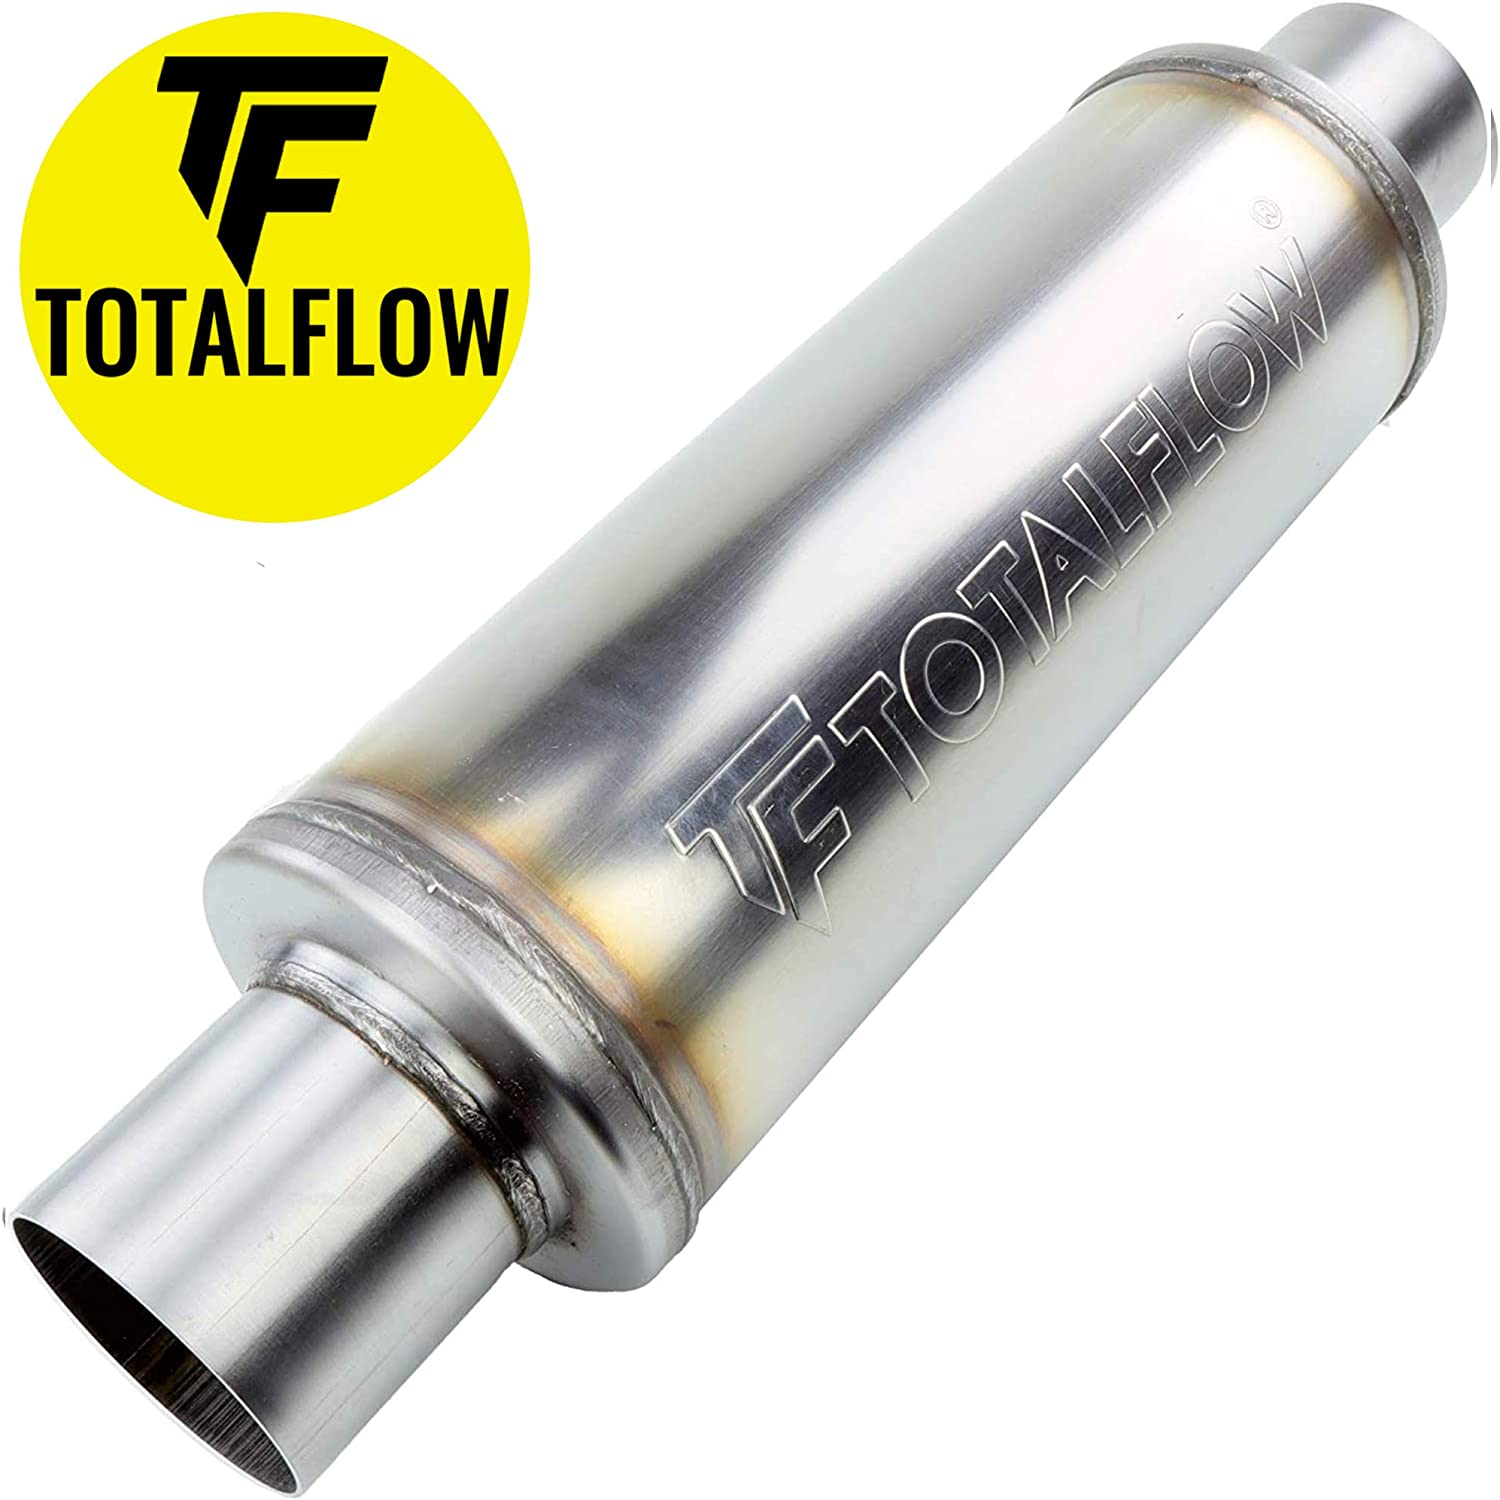 TOTALFLOW 5 Round 20414 Straight Through Exhaust Muffler 409 Stainless Steel